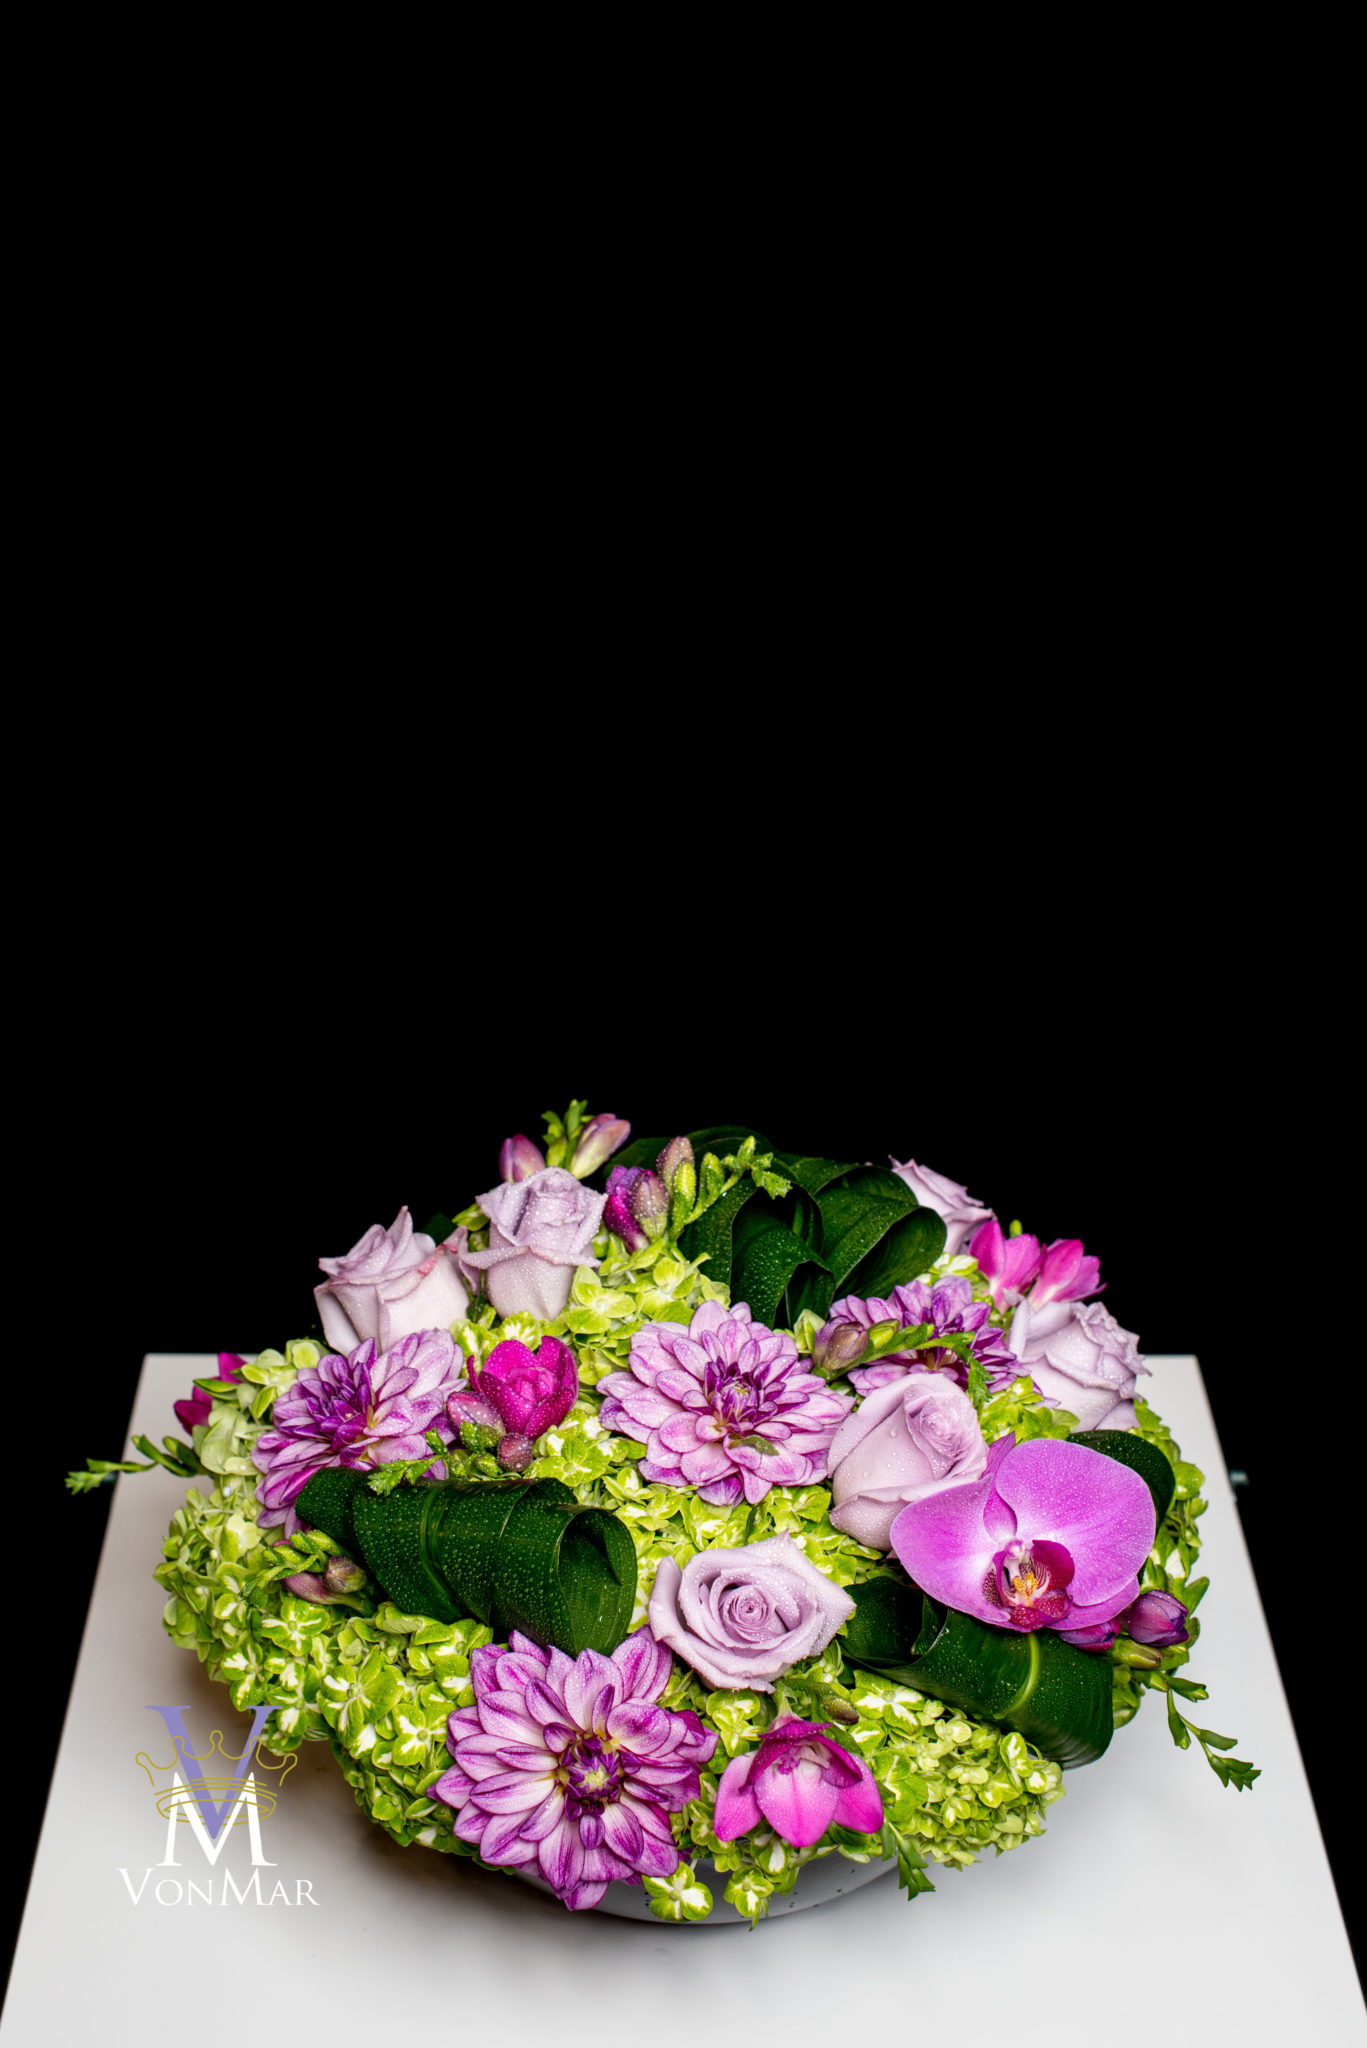 mounded green hydrangea, purple roses and dahlias